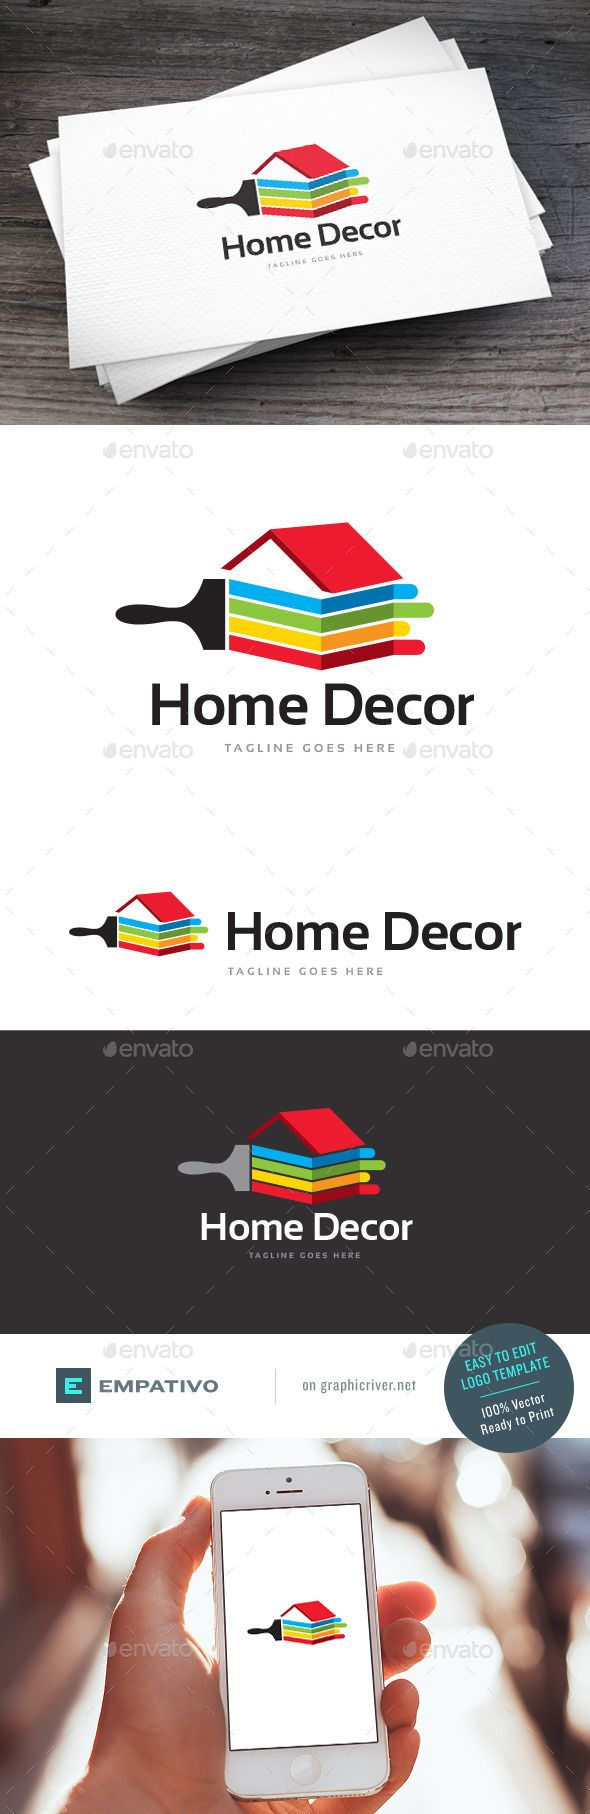 Home Decor Logo Template #vector #eps #brush #construction company • Available here → https://graphicriver.net/item/home-decor-logo-template/11590458?ref=pxcr